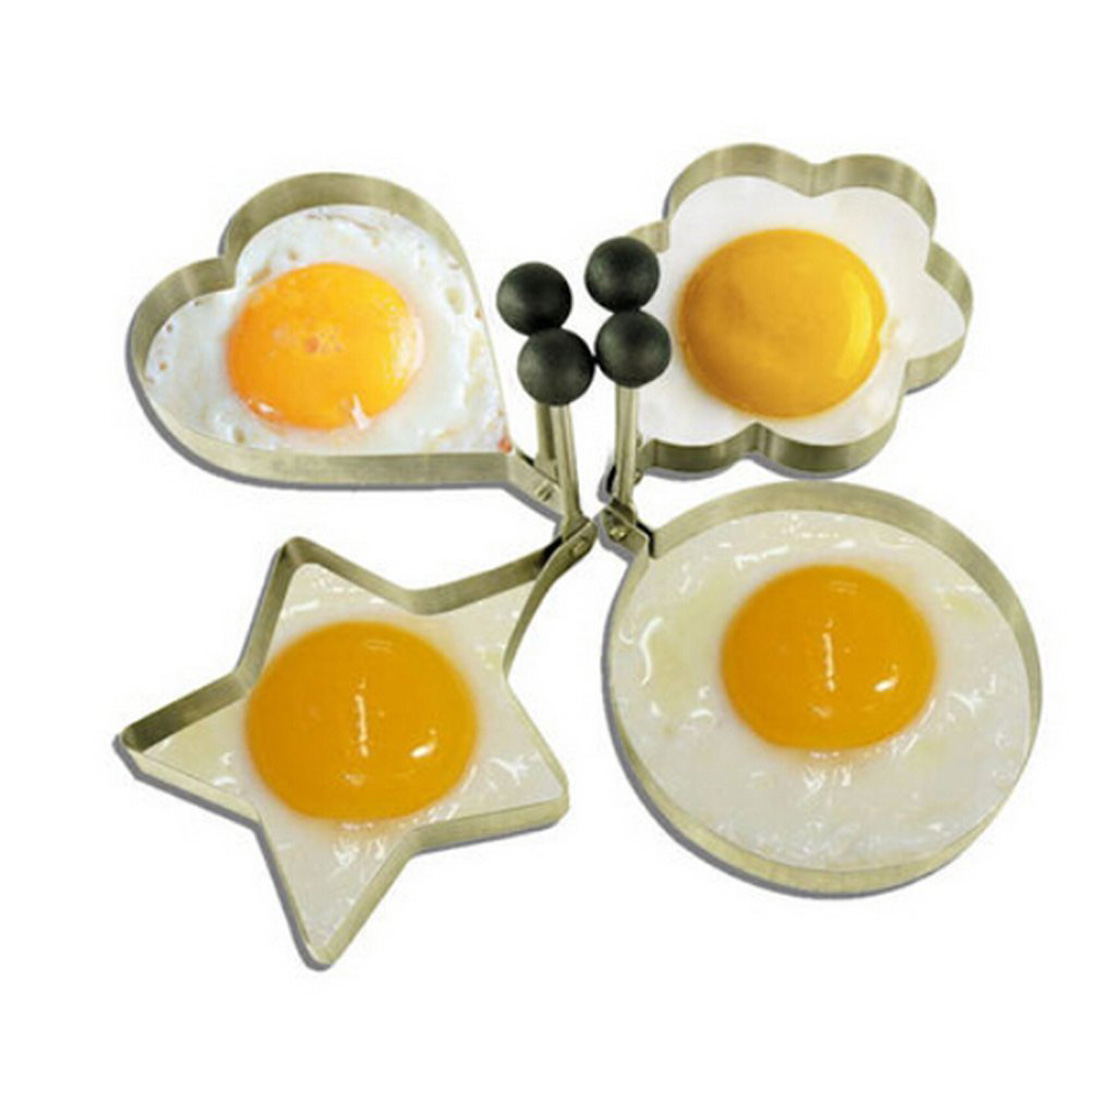 4 Pcs Stainless Steel Non-stick Small Frying Egg Mold Ring Pancake Mould